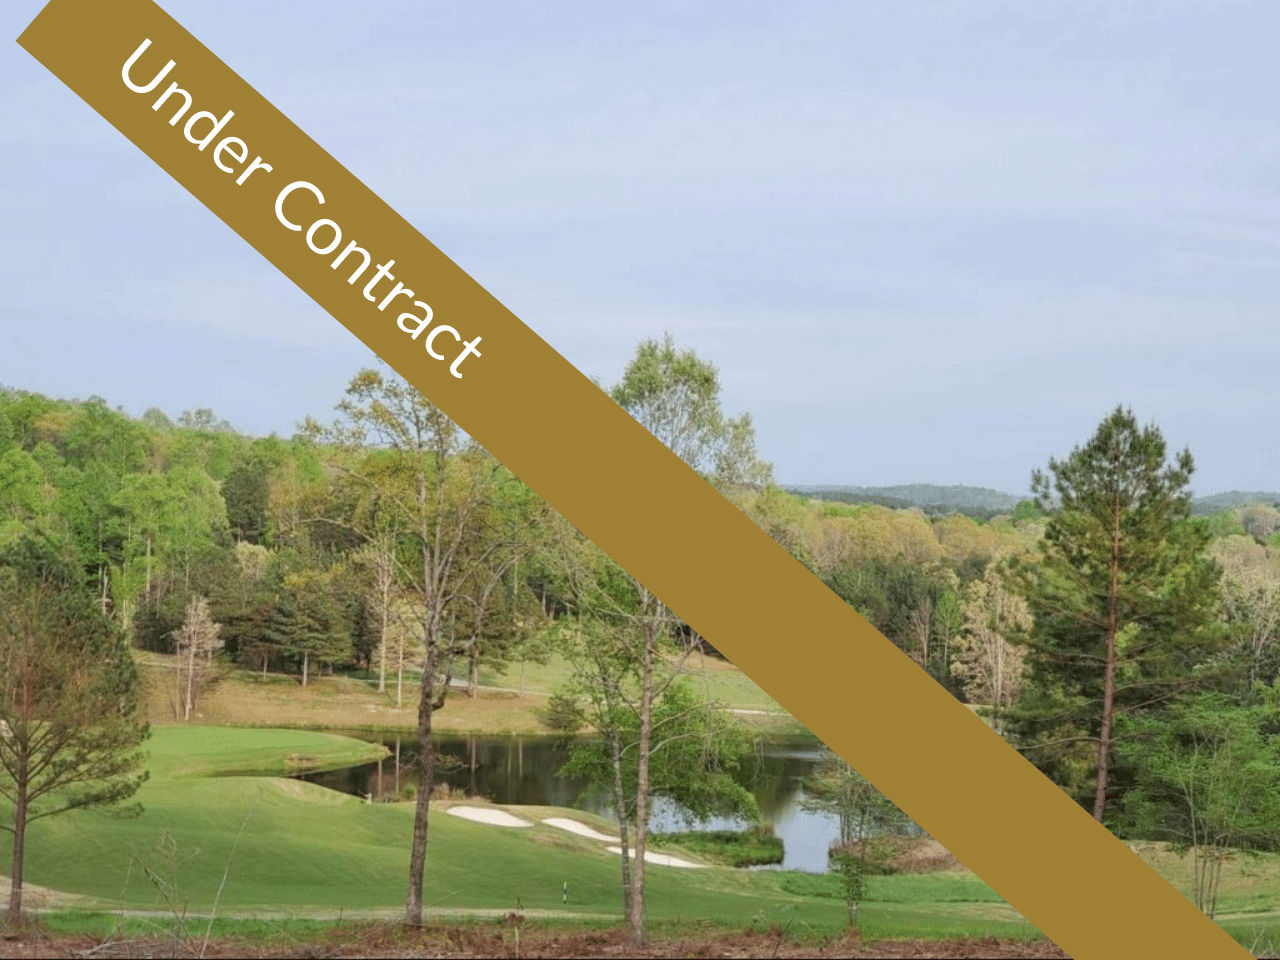 55 Currahee Club Dr Homesite Under Contract